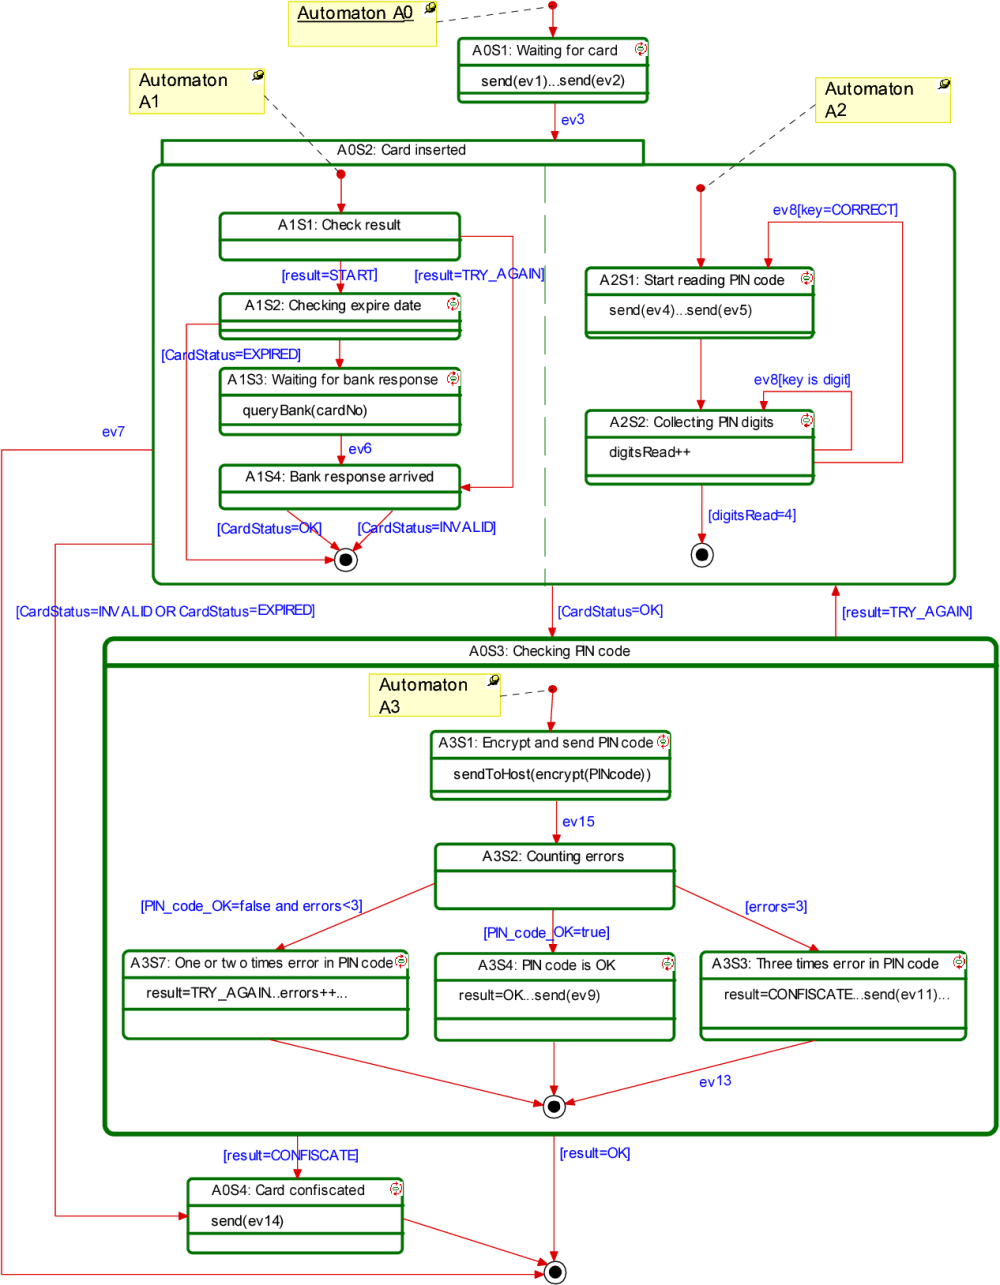 medium resolution of uml state diagram of the atm main logic controller for use case of